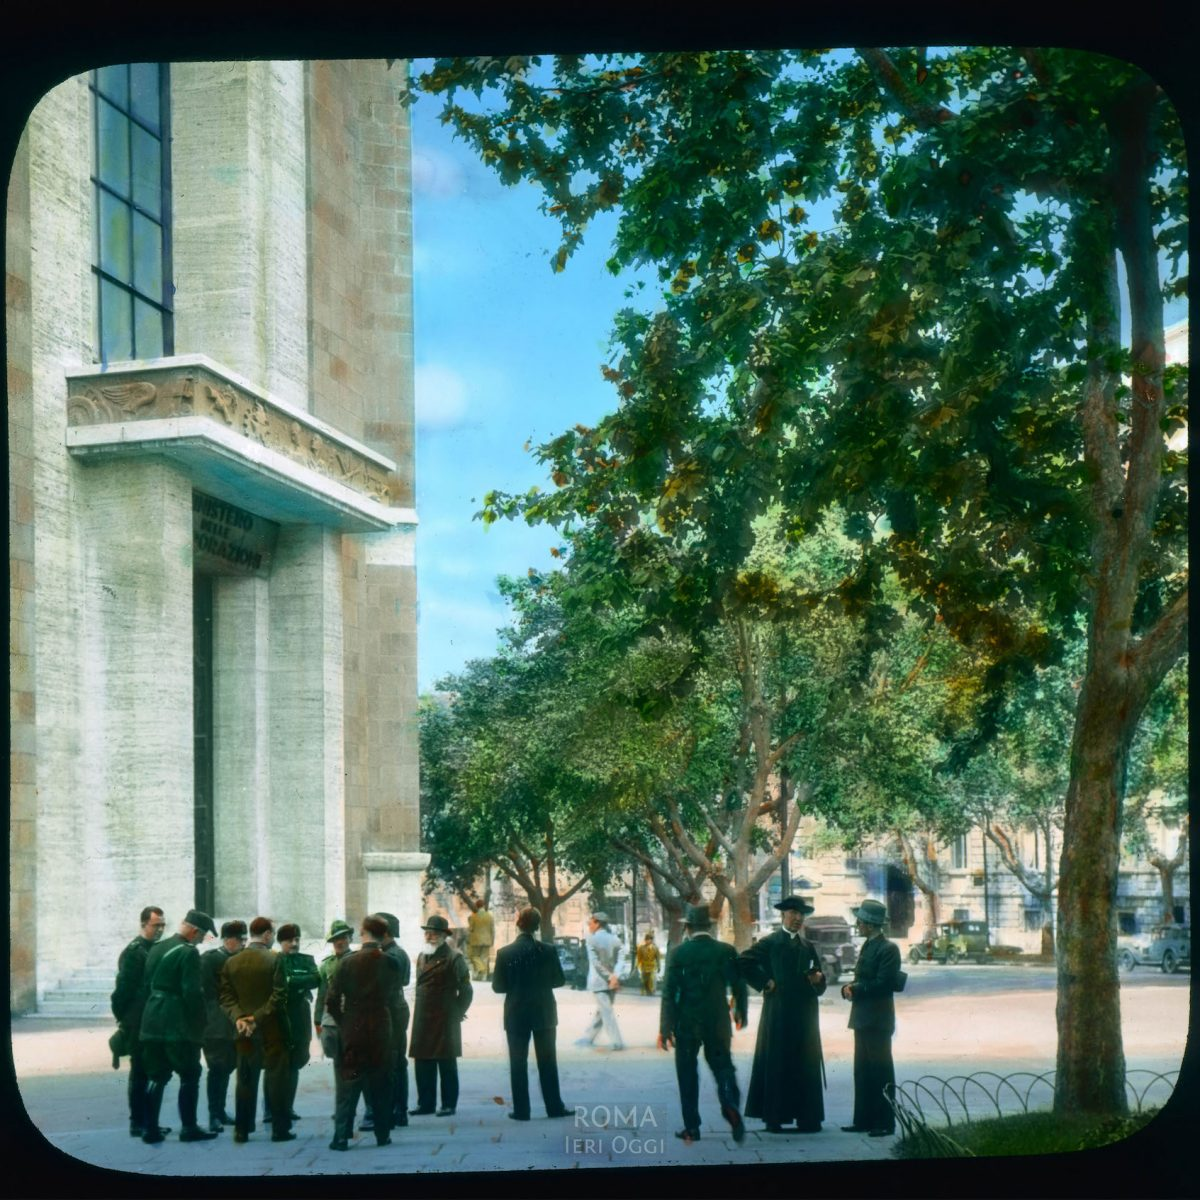 Rome. Via Vittorio Veneto: office building with a crowd of men standing outside View in tinted lantern slide, ca. 1931-1938